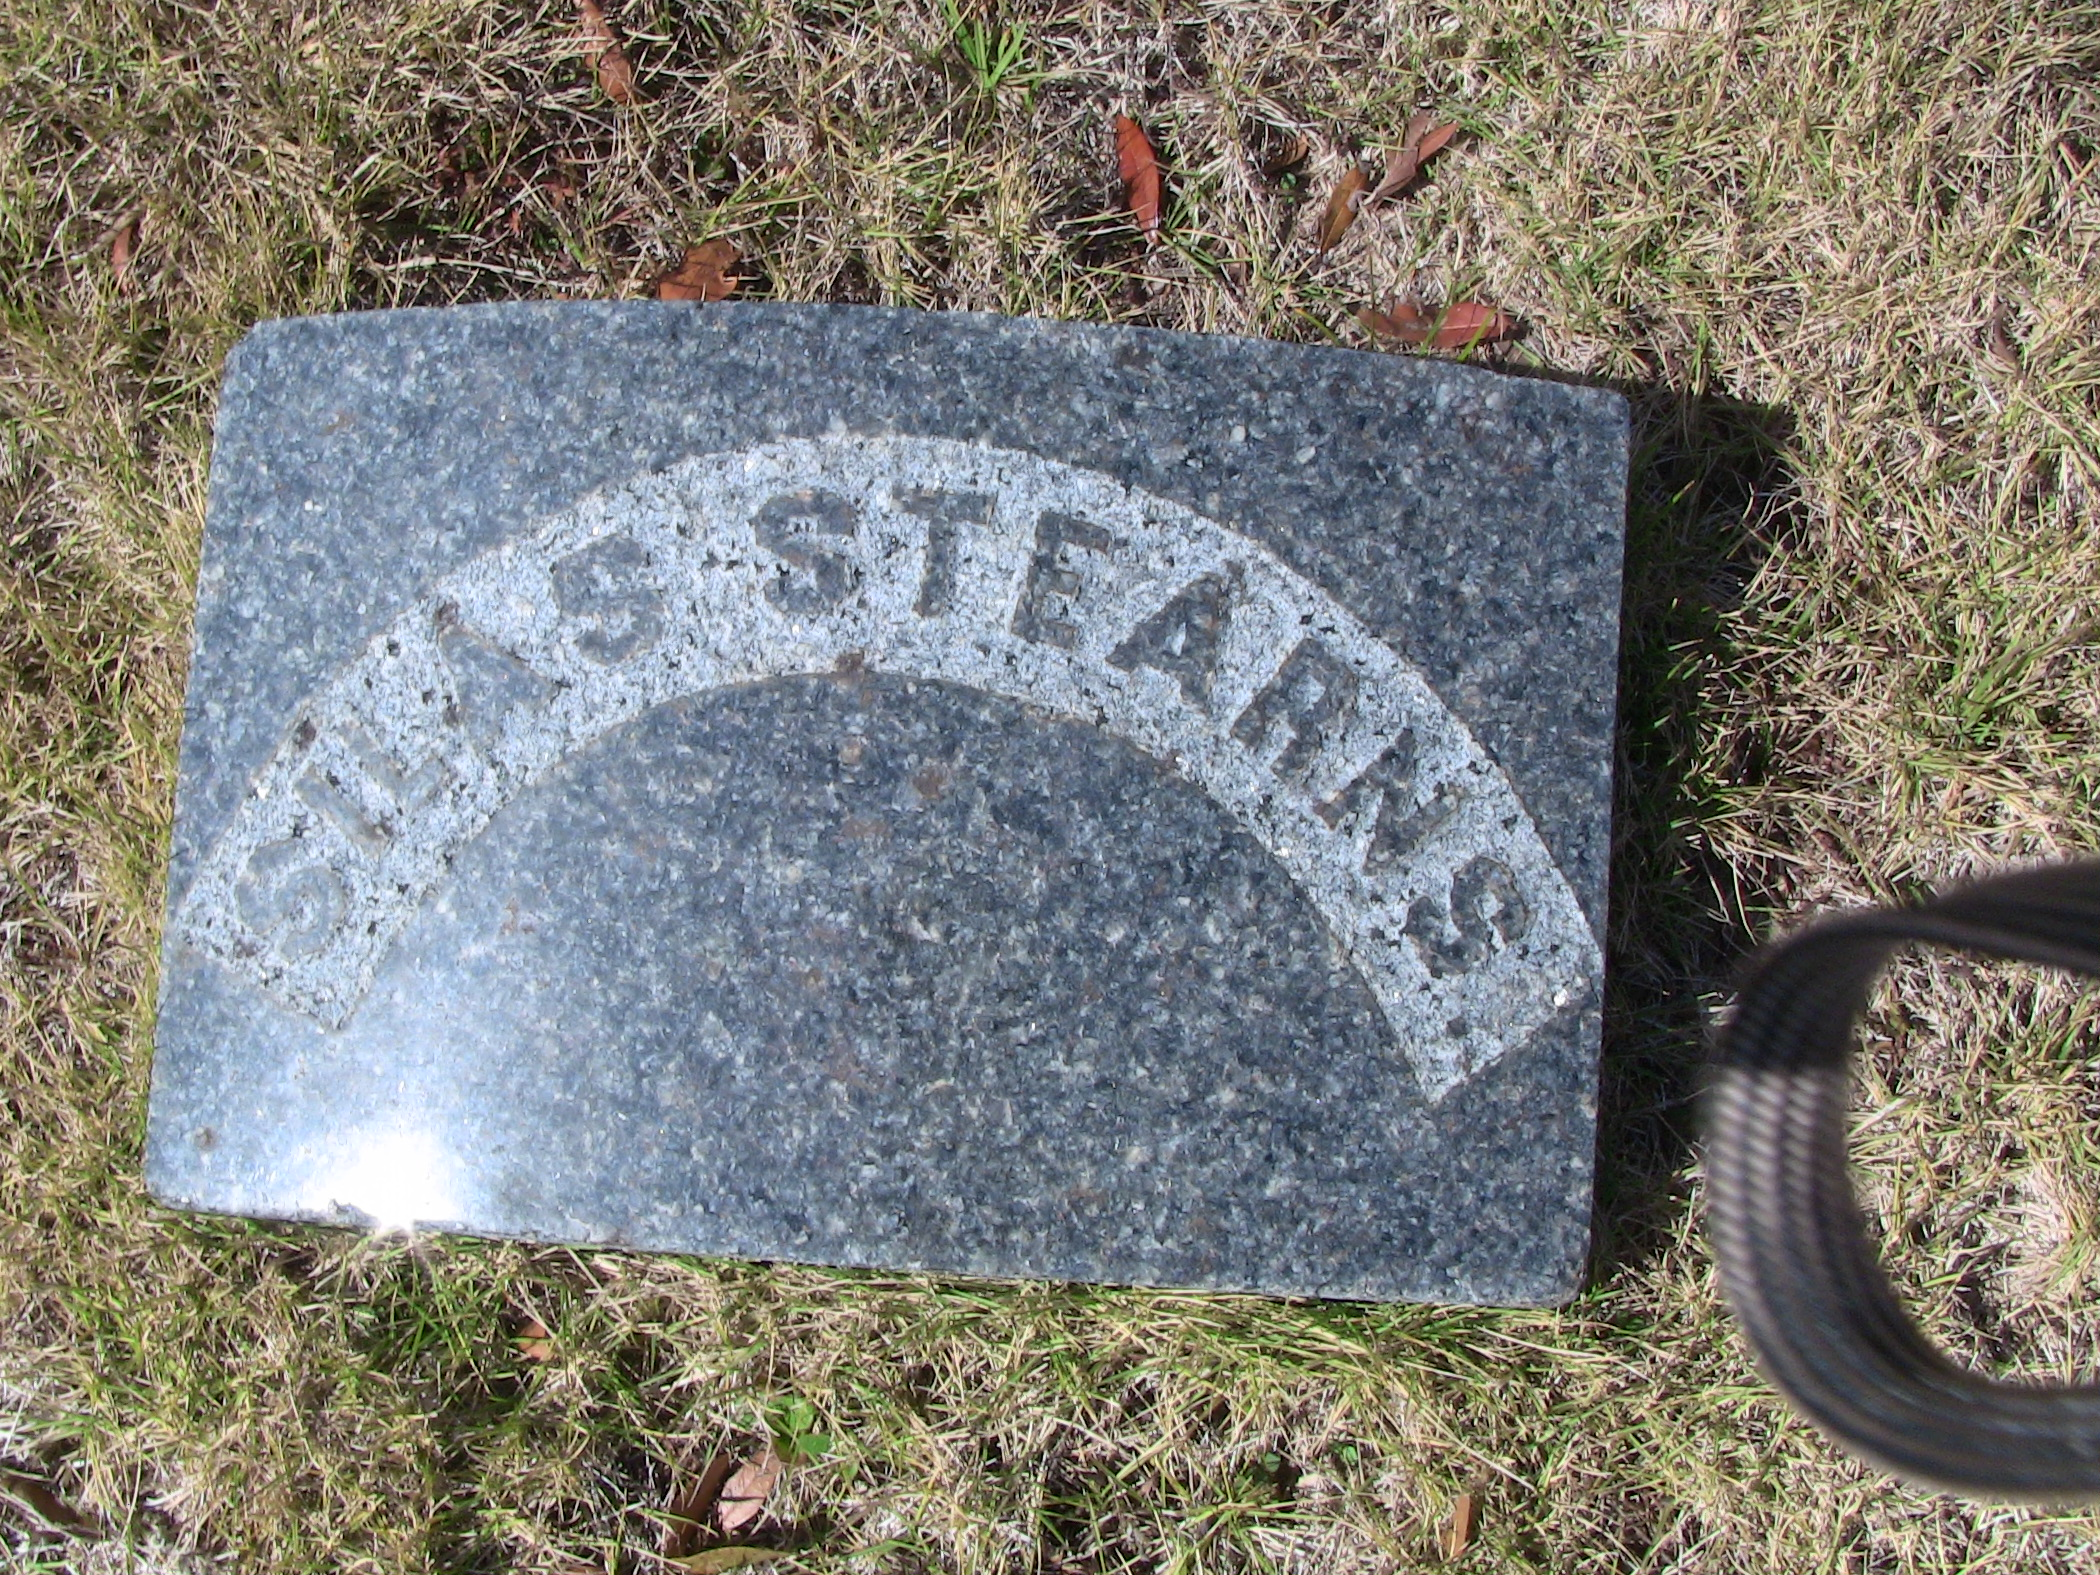 Silas Stearns